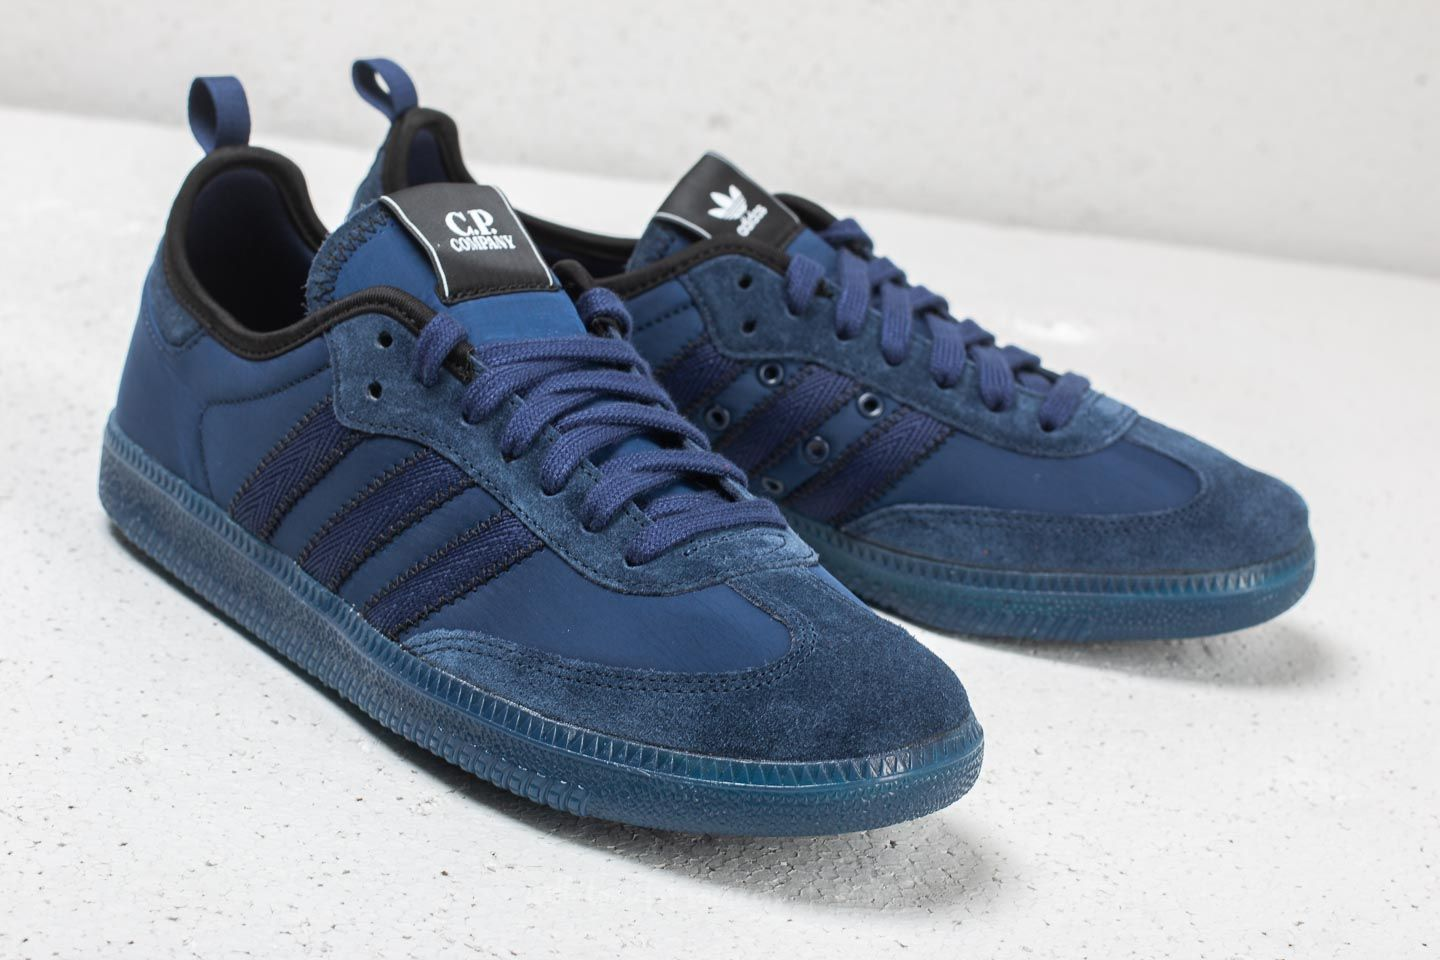 sports shoes 422ed dd5df adidas x C.P. Company Samba Dark Blue/ Night Sky/ Dark ...